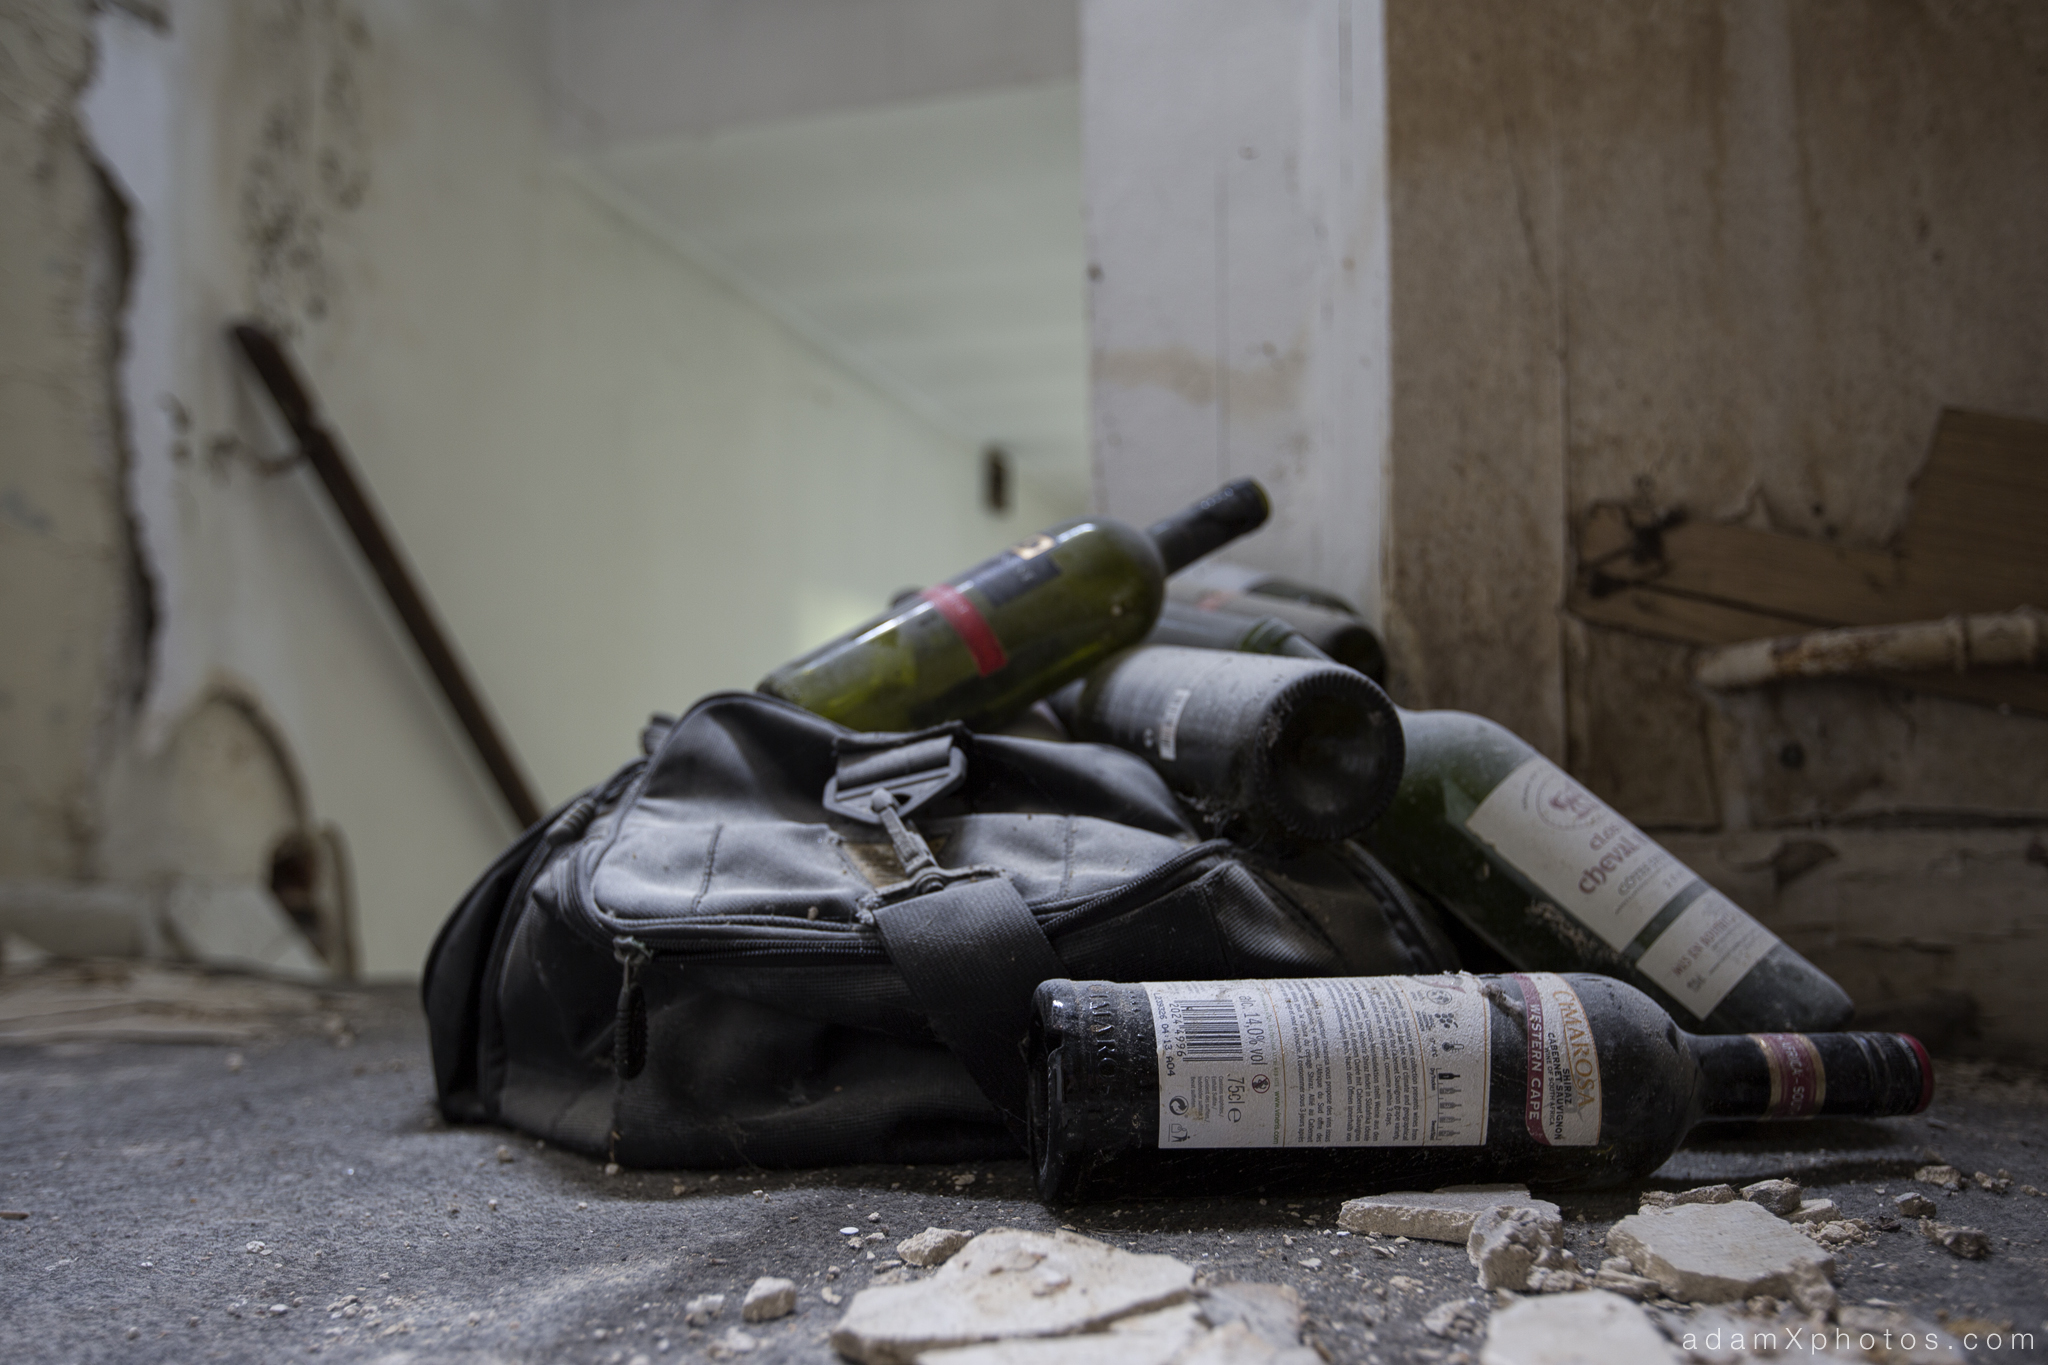 Adam X Chateau de la Chapelle urbex urban exploration belgium abandoned wine bottles dusty